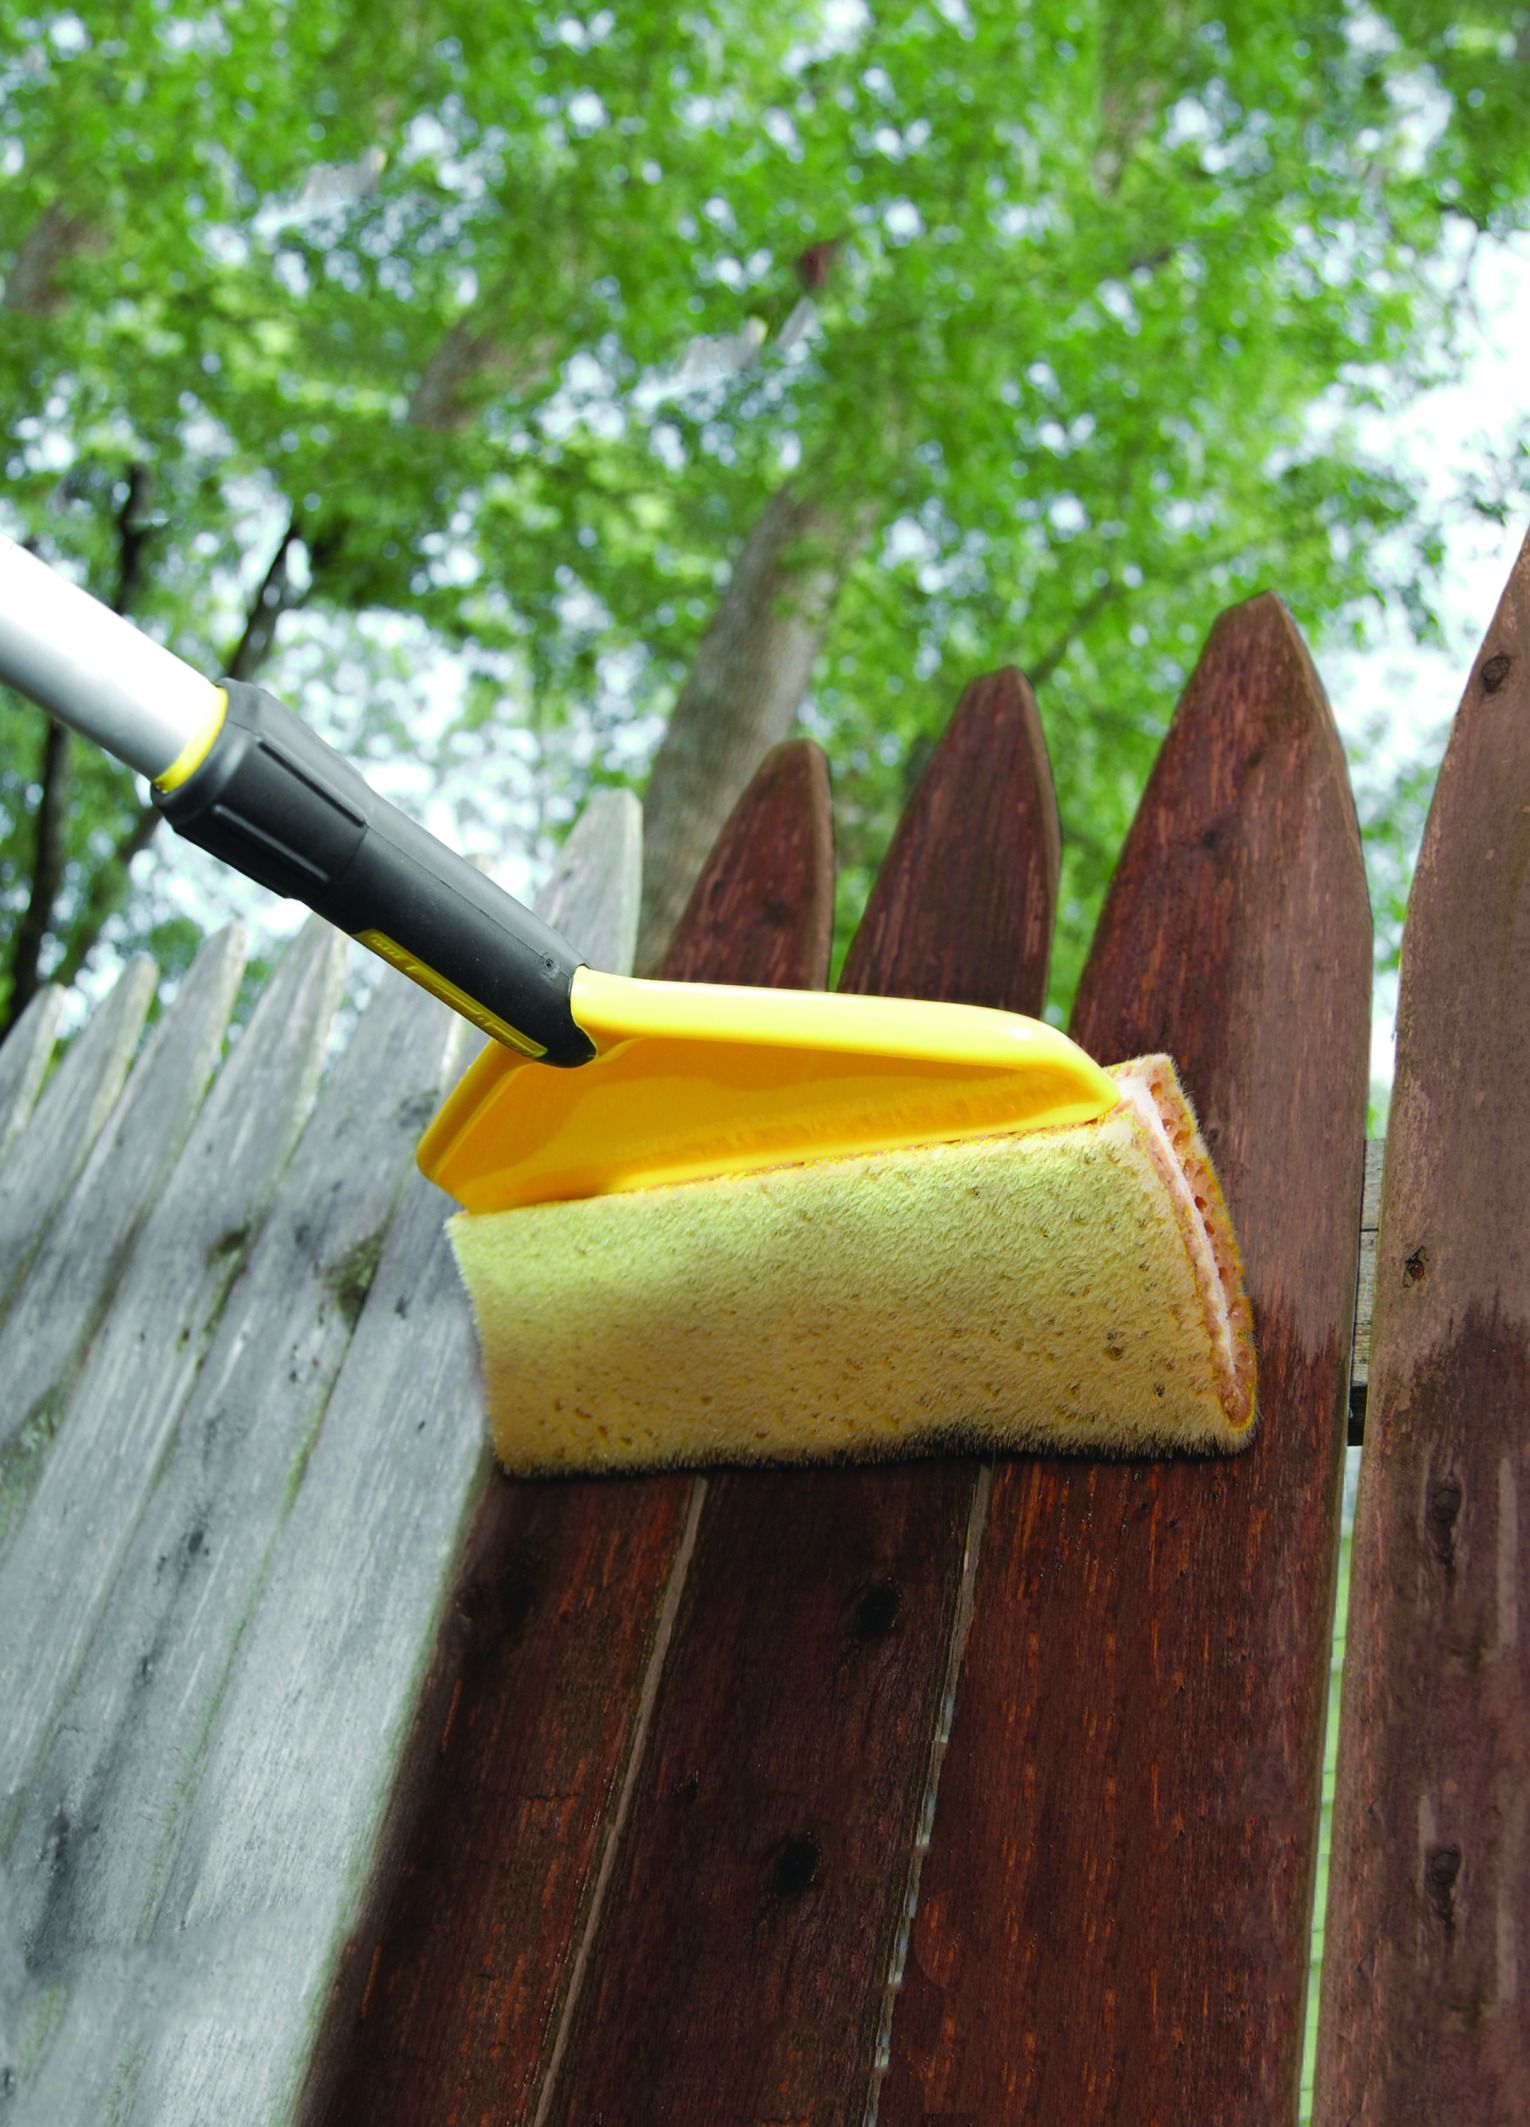 Tackle All Your Wooden Surfaces With A Woodmates Flex Core Stain Applicator Combining The Best Aspects Of A Paintbrush And A Pa Stain Applicators Stain Tools